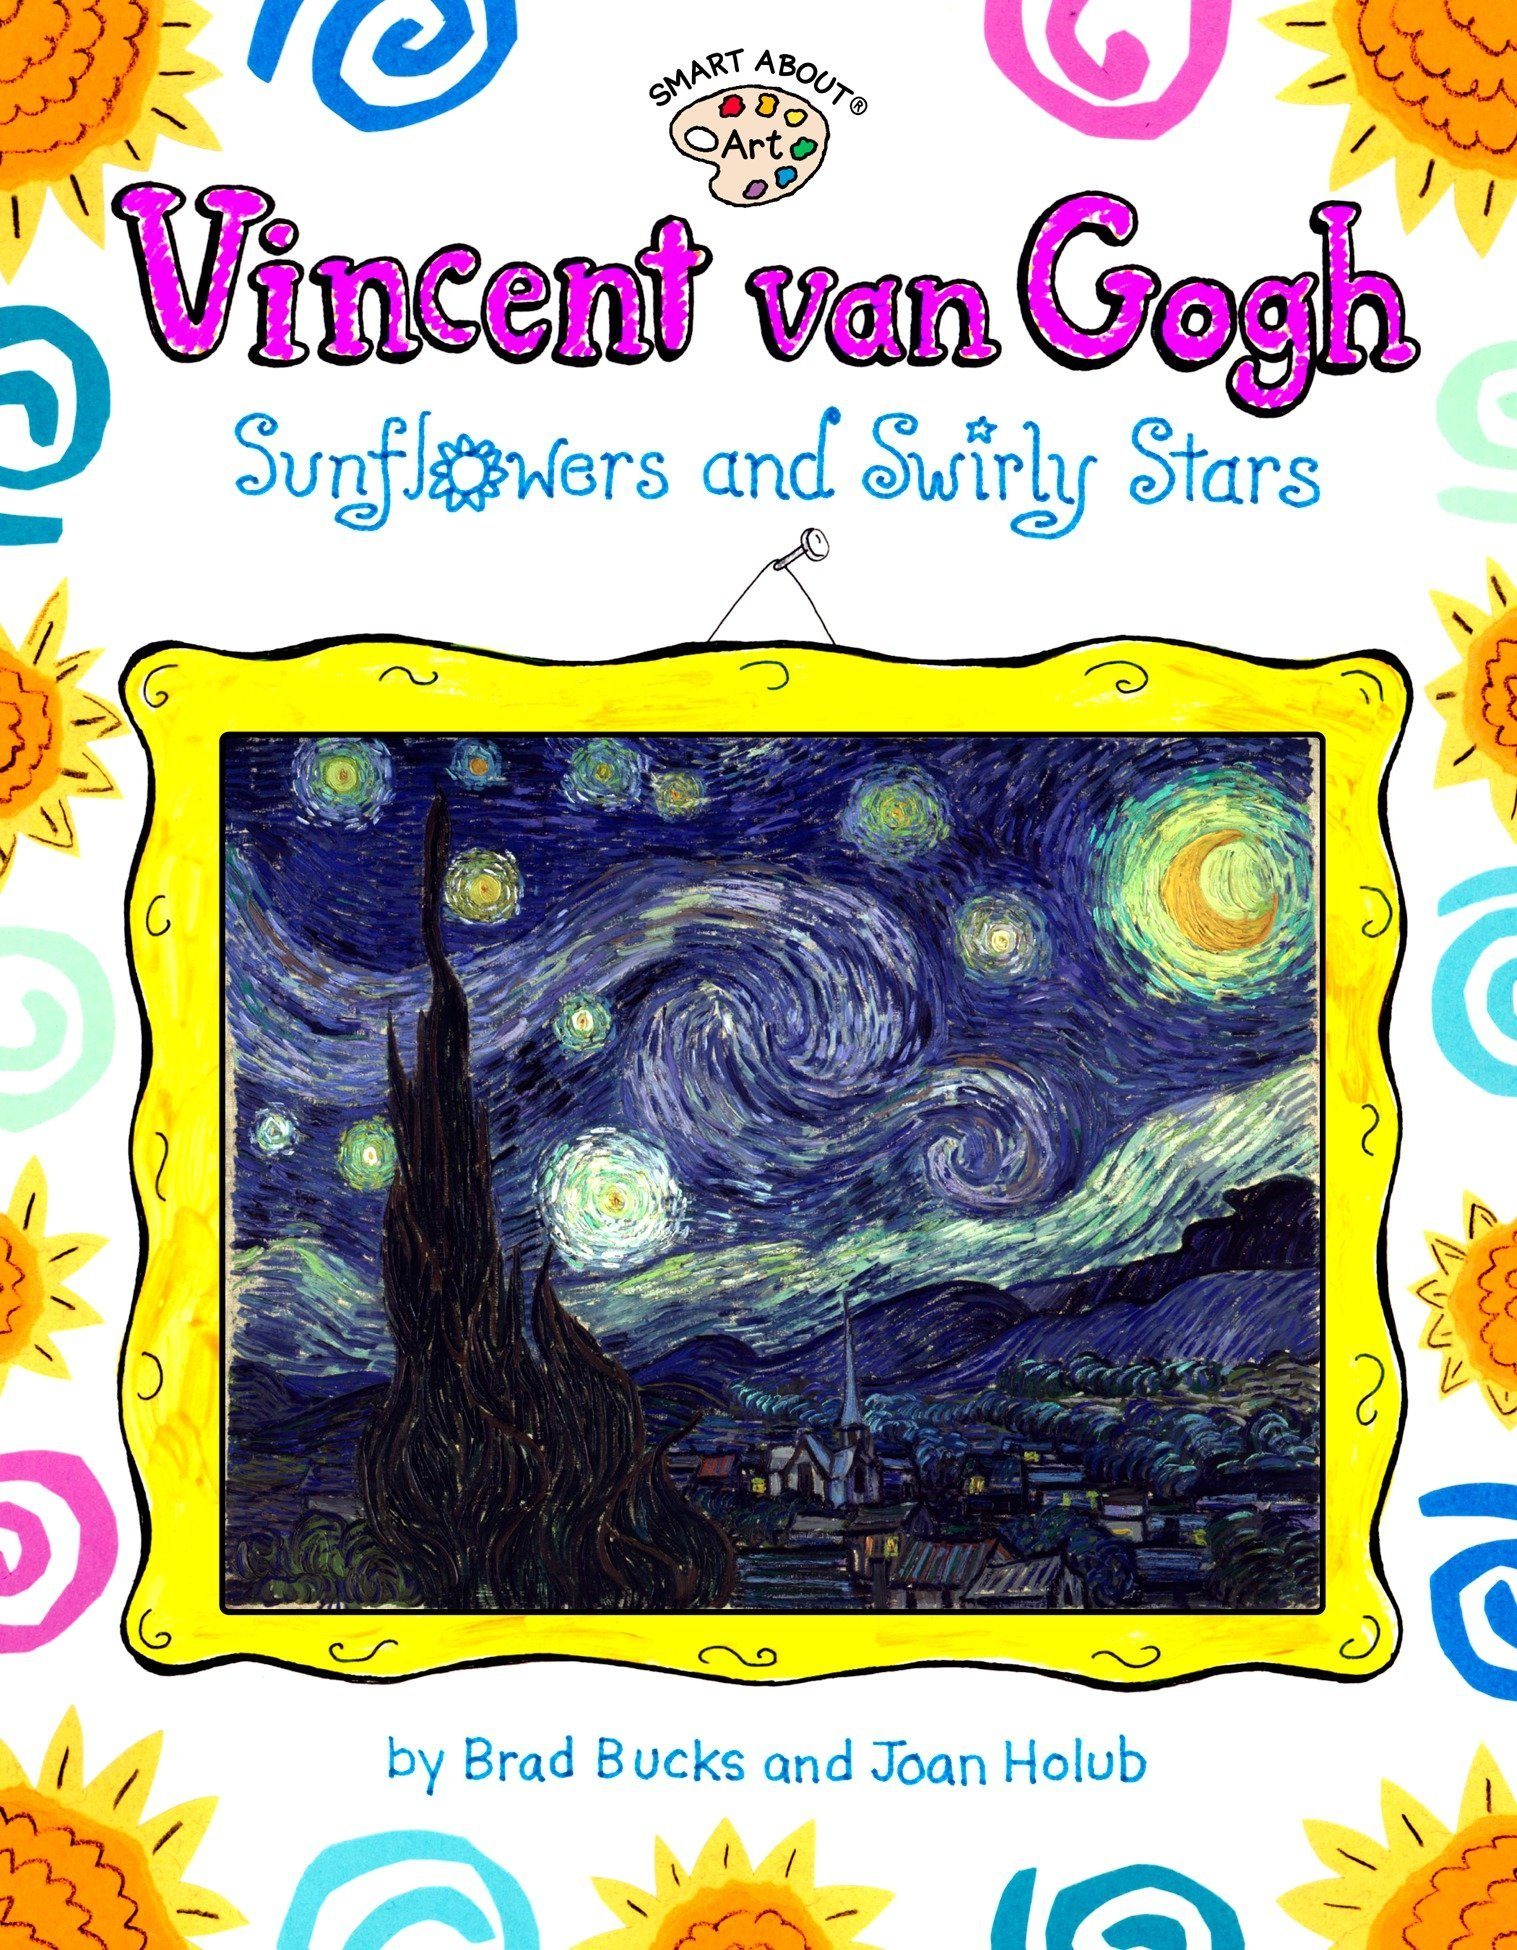 Vincent Van Gogh: Sunflowers and Swirly Stars (Smart About Art) pdf